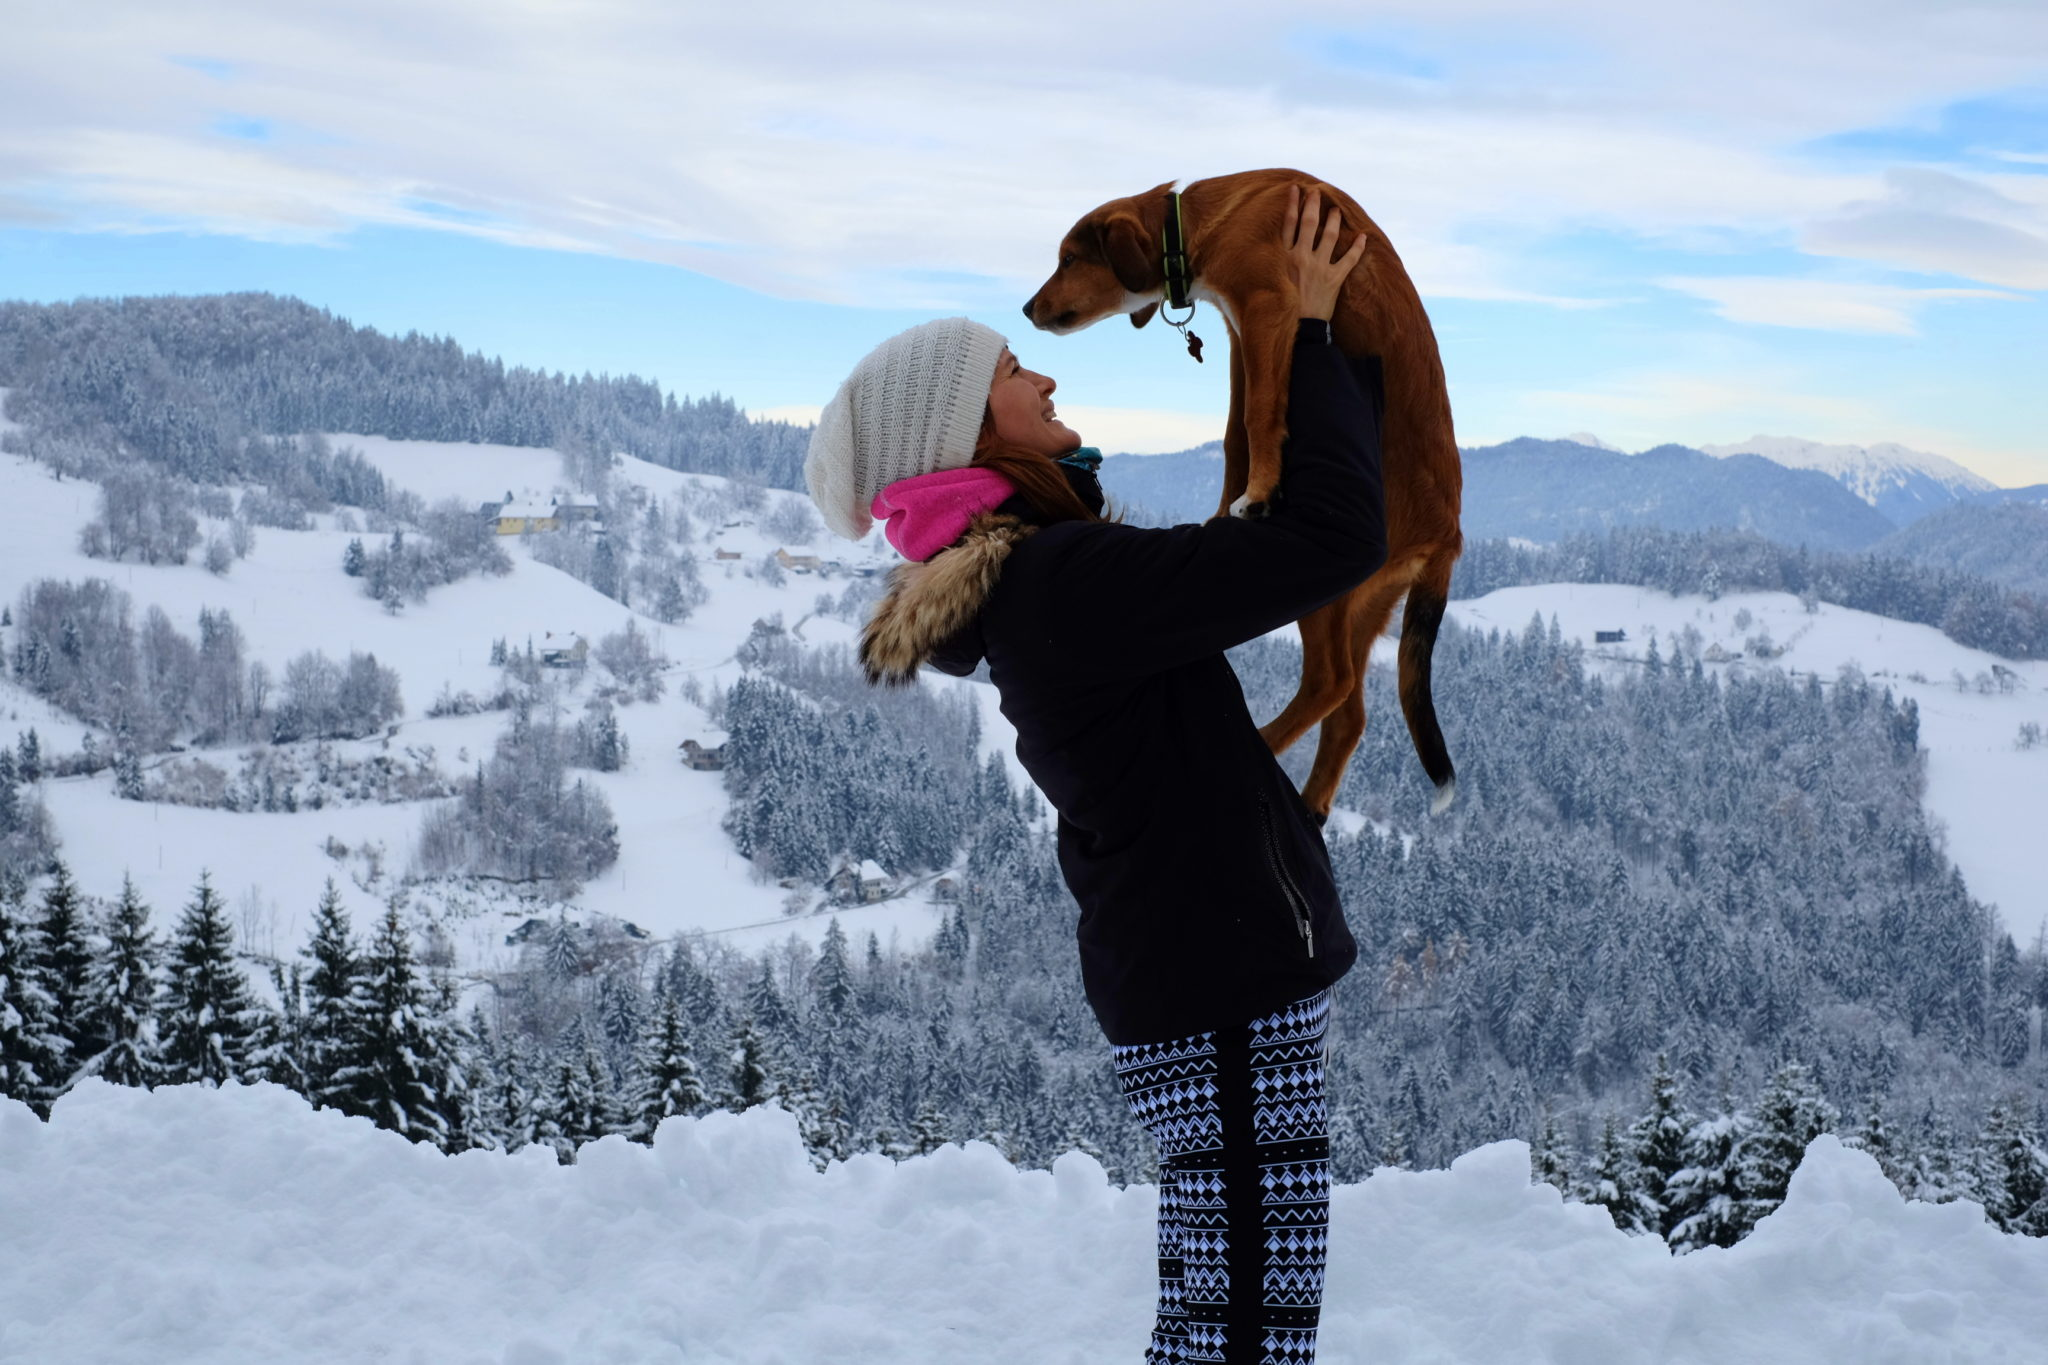 A cute puppy and her owner in the mountains